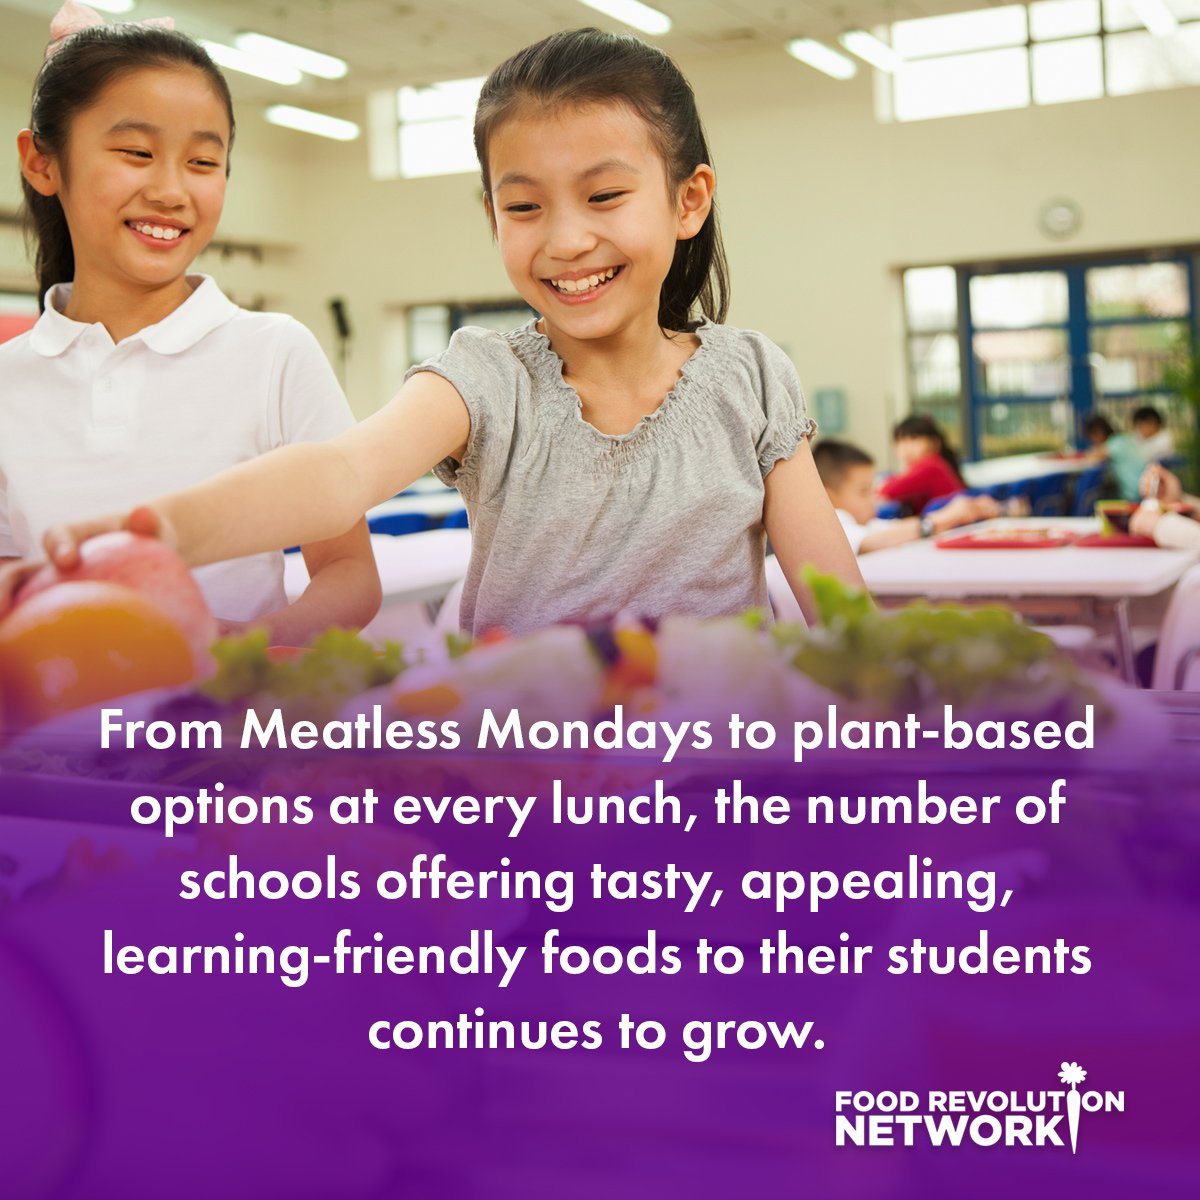 From Meatless Mondays to plant-based options at every lunch, the number of schools offering tasty, appealing, learning-friendly foods to their students continues to grow.